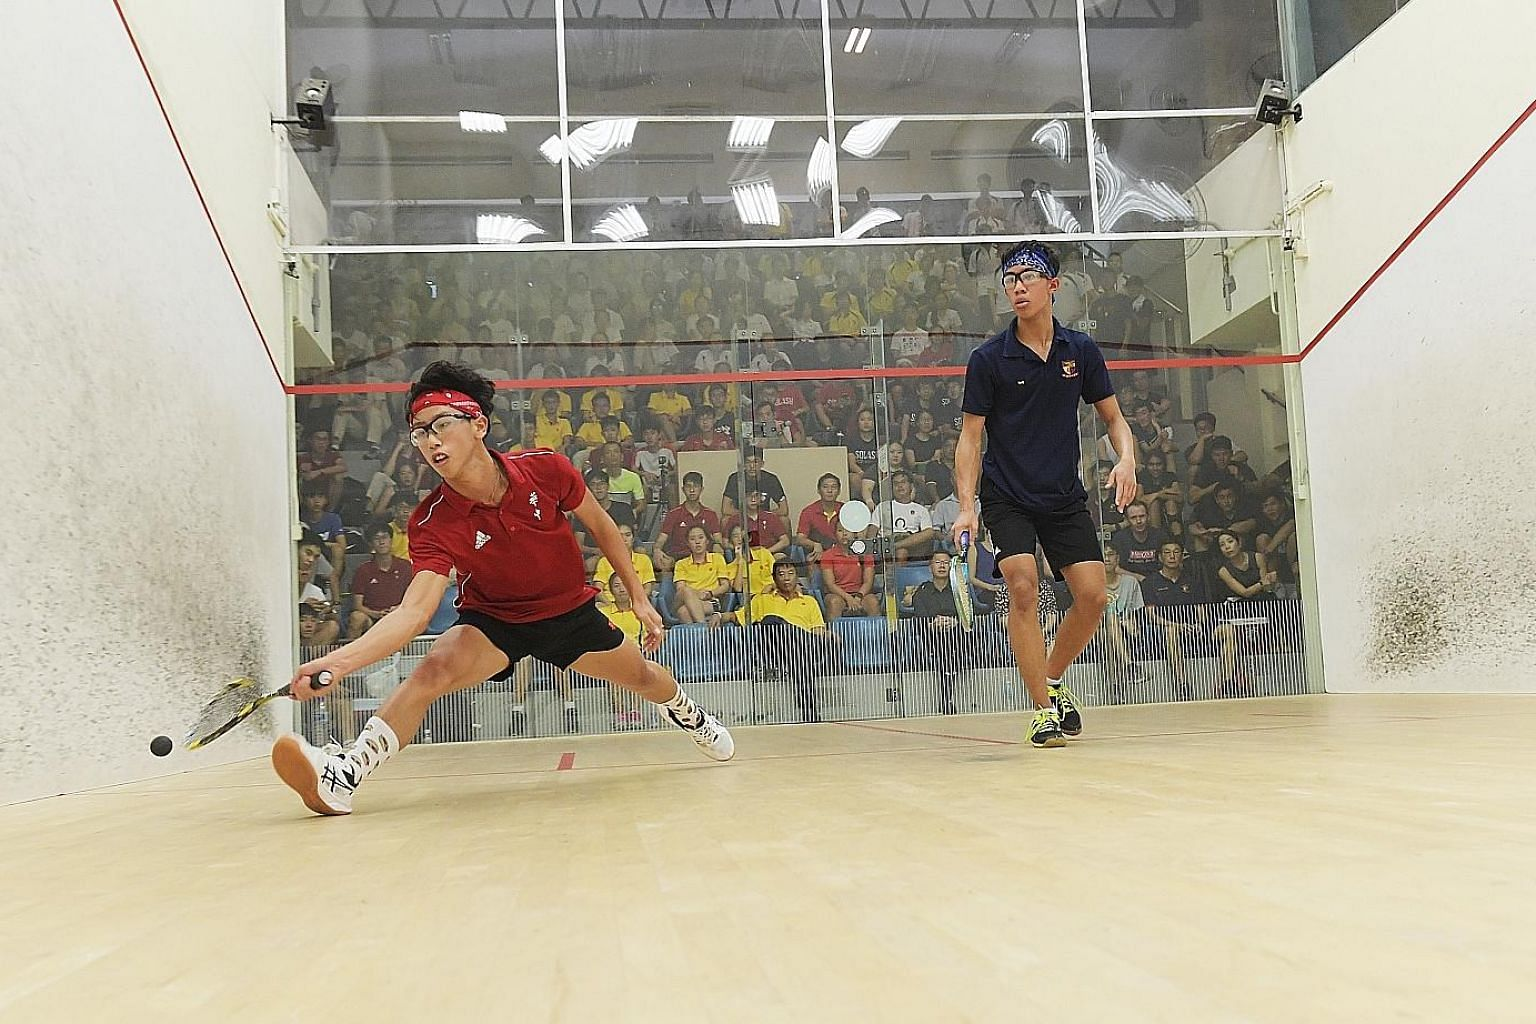 Hwa Chong Institution's Jovan Lee (in red) playing against Rudy Johari of Anglo-Chinese School (Independent) in the third match of the Schools National boys' A Division squash team final at Kallang Squash Centre yesterday.